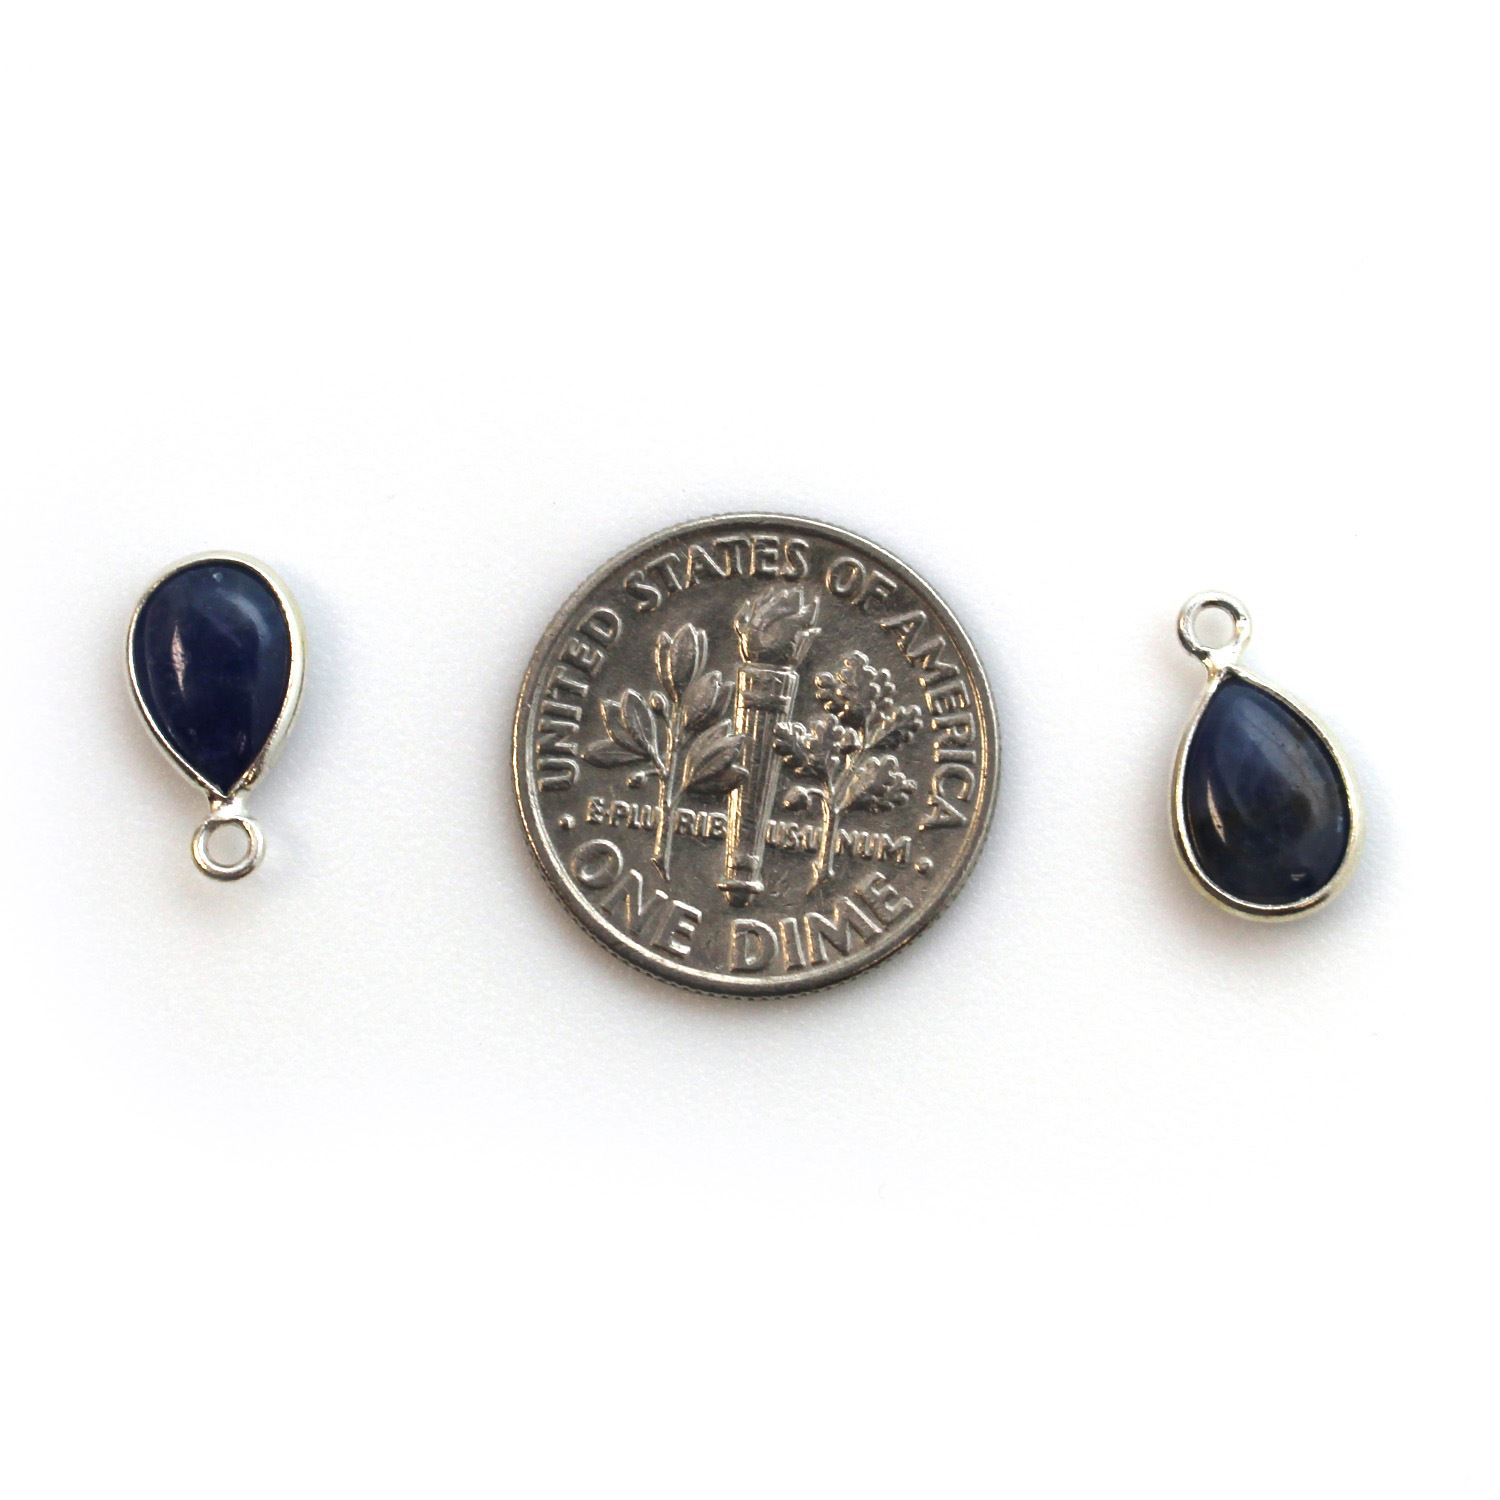 Bezel Charm Pendant - Sterling Silver Charm - Natural Blue Sapphire - Tiny Teardrop Shape